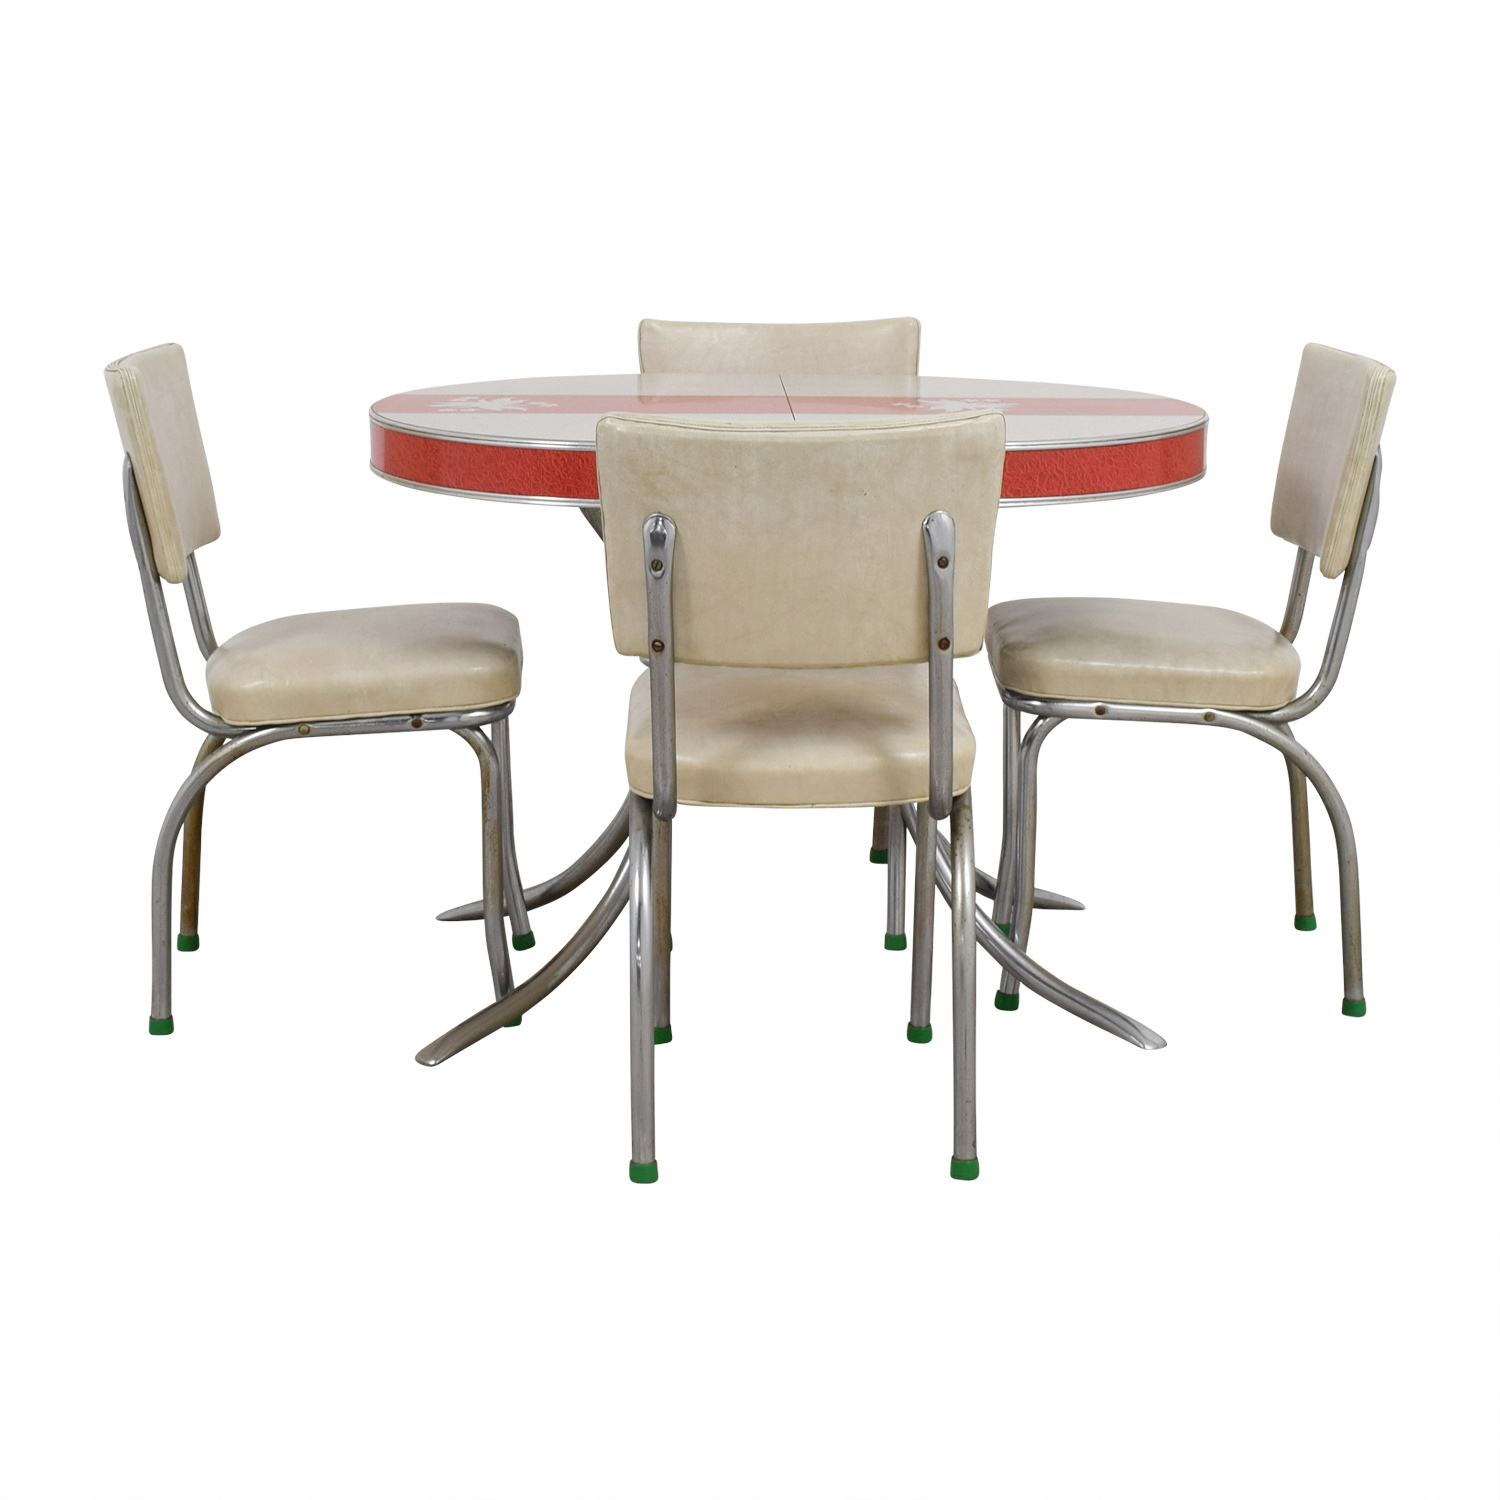 vintage extendable formica top aluminum kitchen table and chairs on sale     78  off   vintage extendable formica top aluminum kitchen table      rh   furnishare com